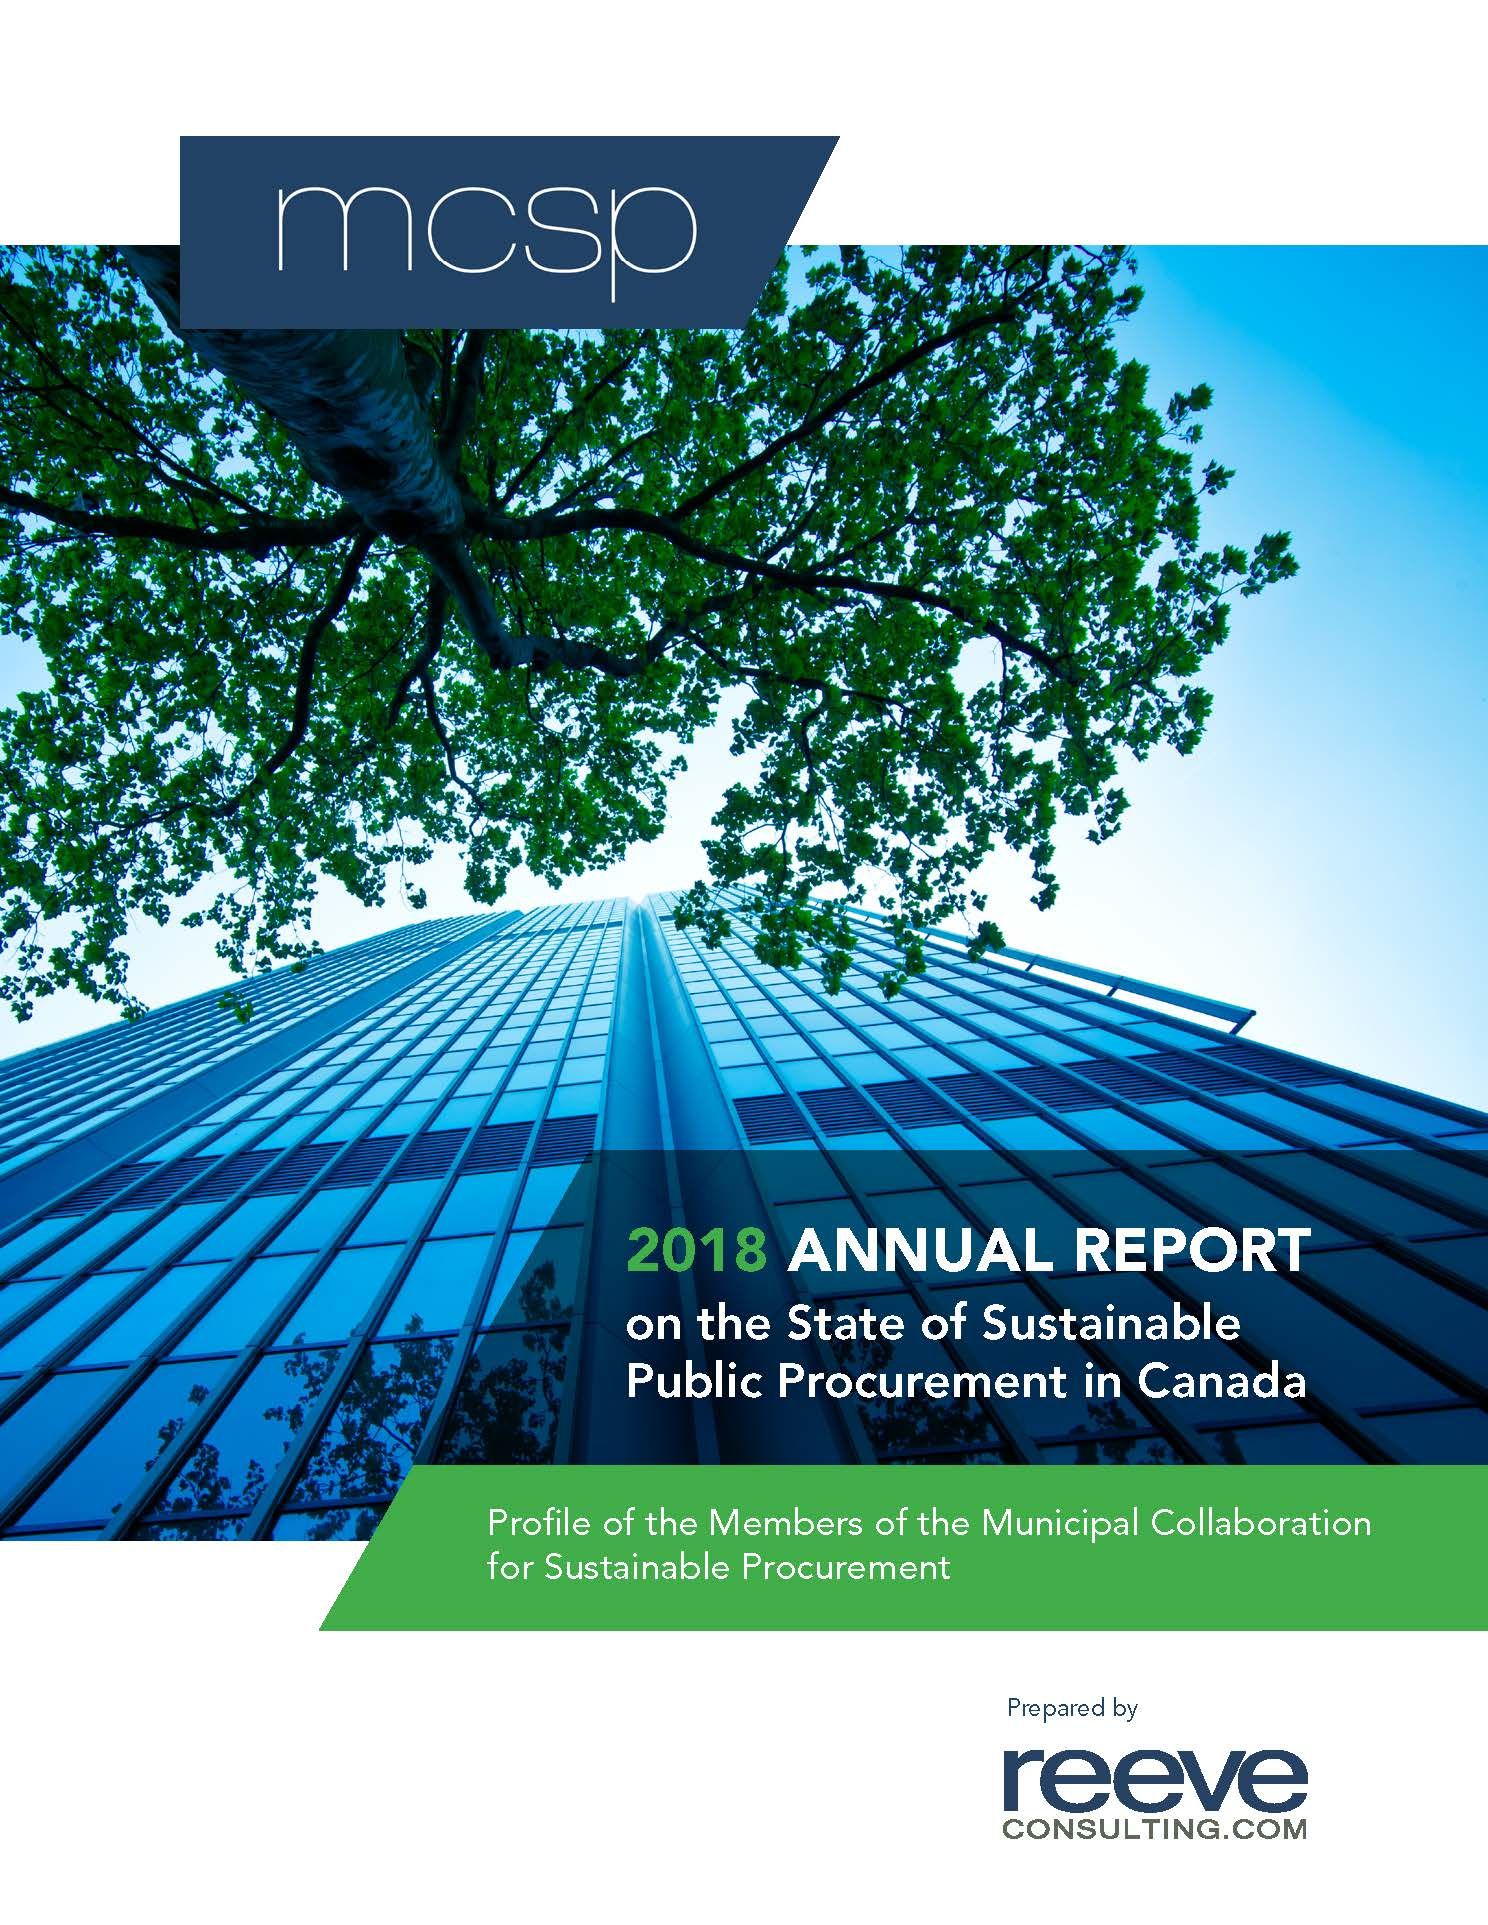 2018 Annual Report on the State of Sustainable Public Procurement in Canada